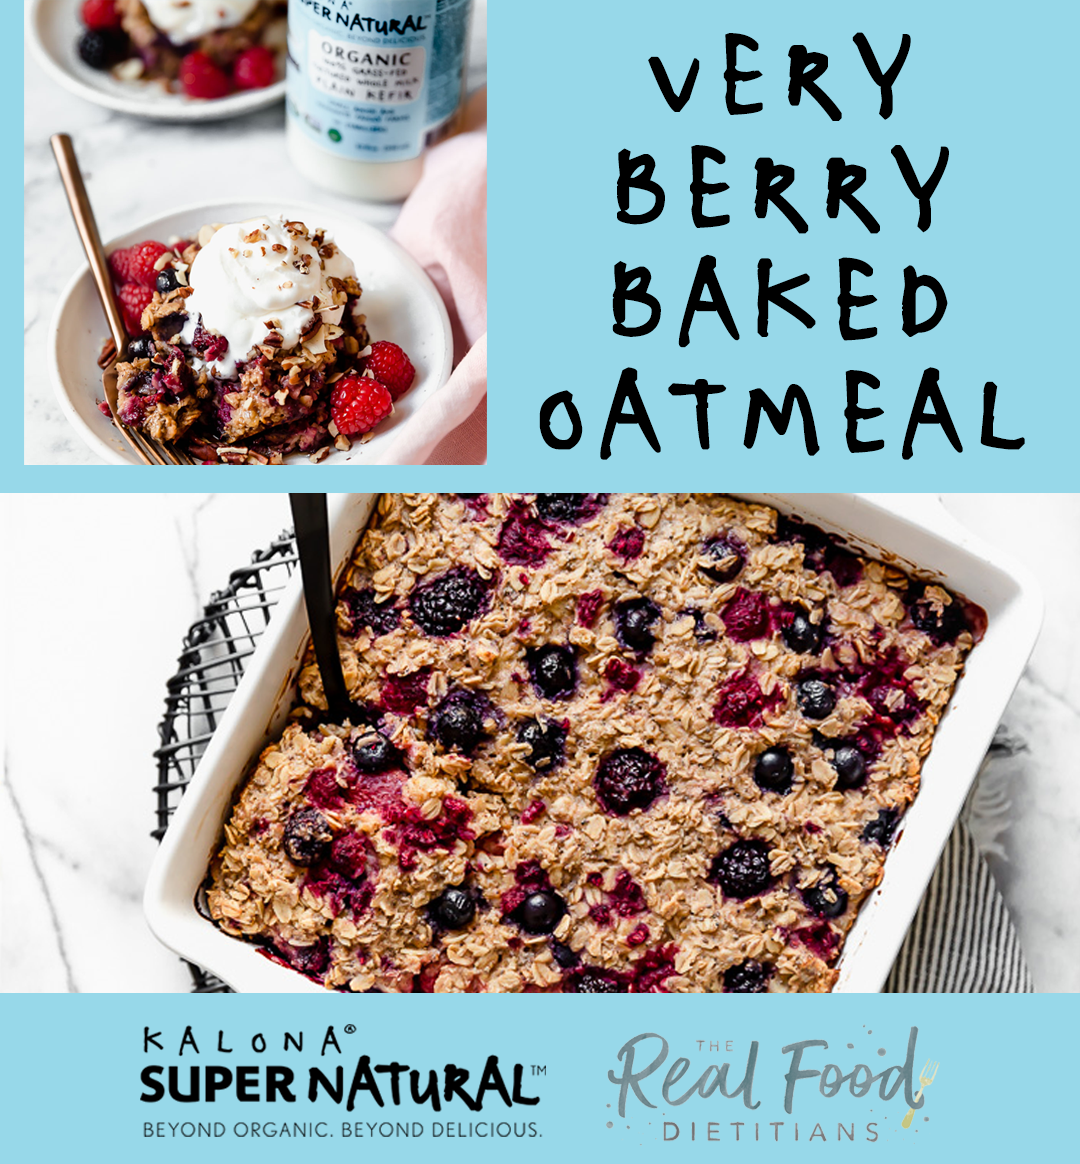 Very Berry Baked Oatmeal Kalona Supernatural Recipe In 2020 Baked Oatmeal Kefir Recipes Baking